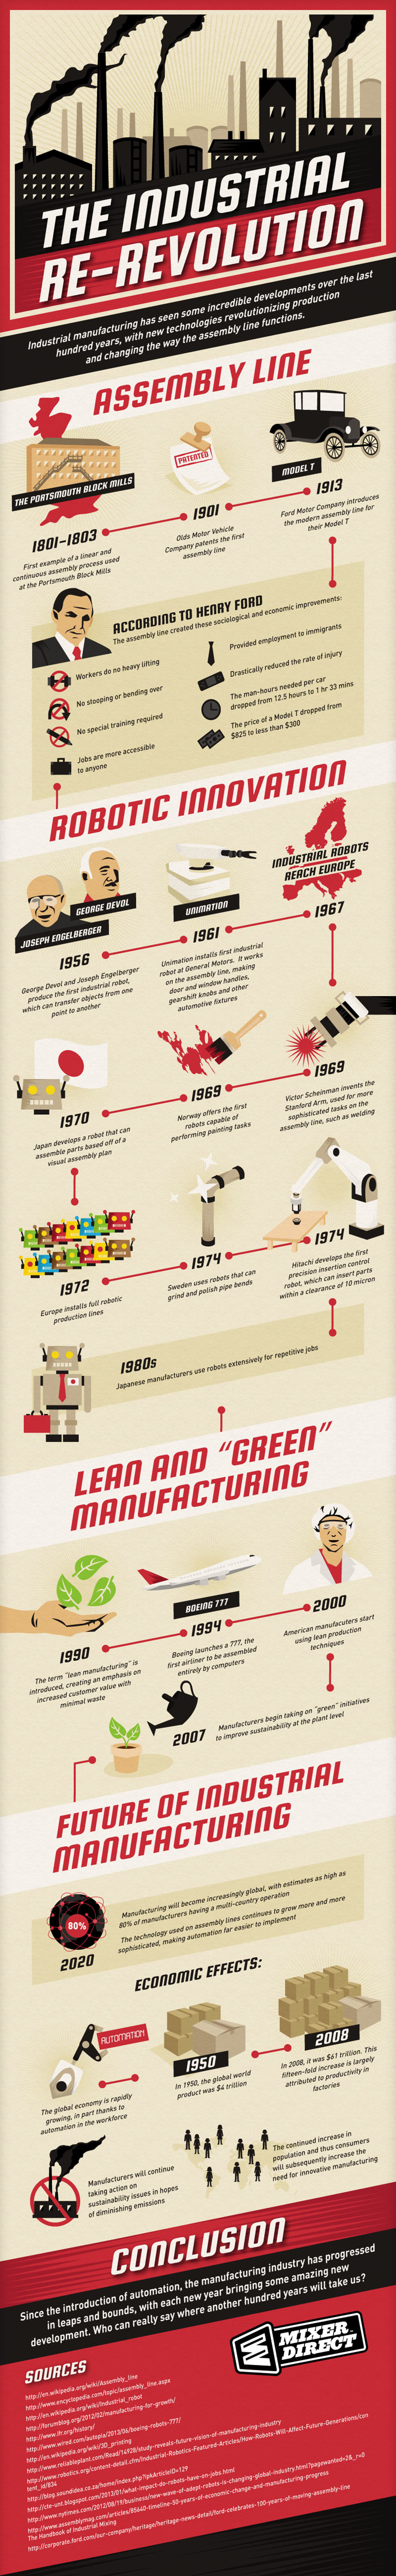 A Visit to Manufacturing Industry Infographic